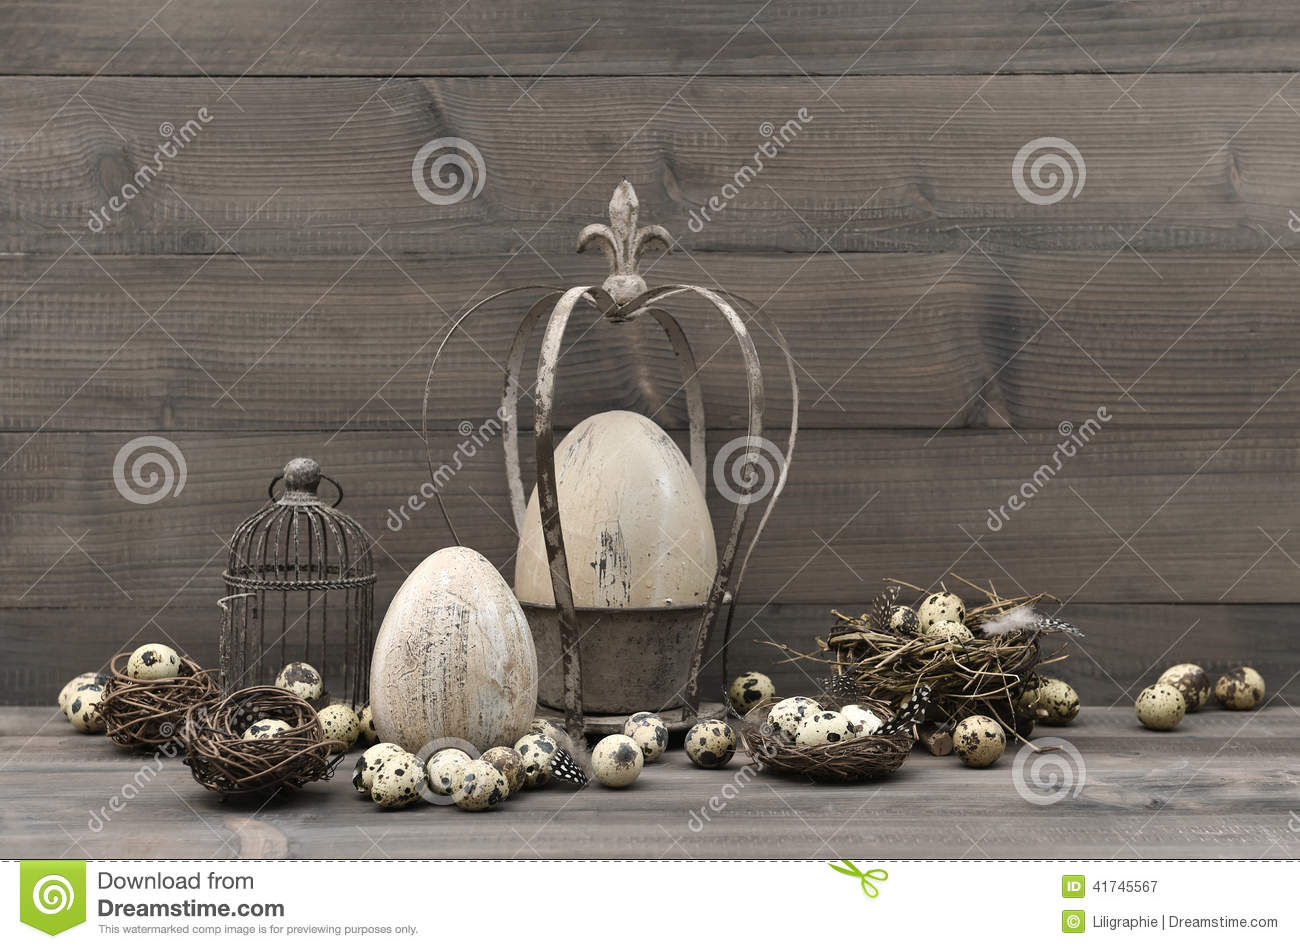 Vintage easter decoration shabby chic still life stock for Idee deco retro chic